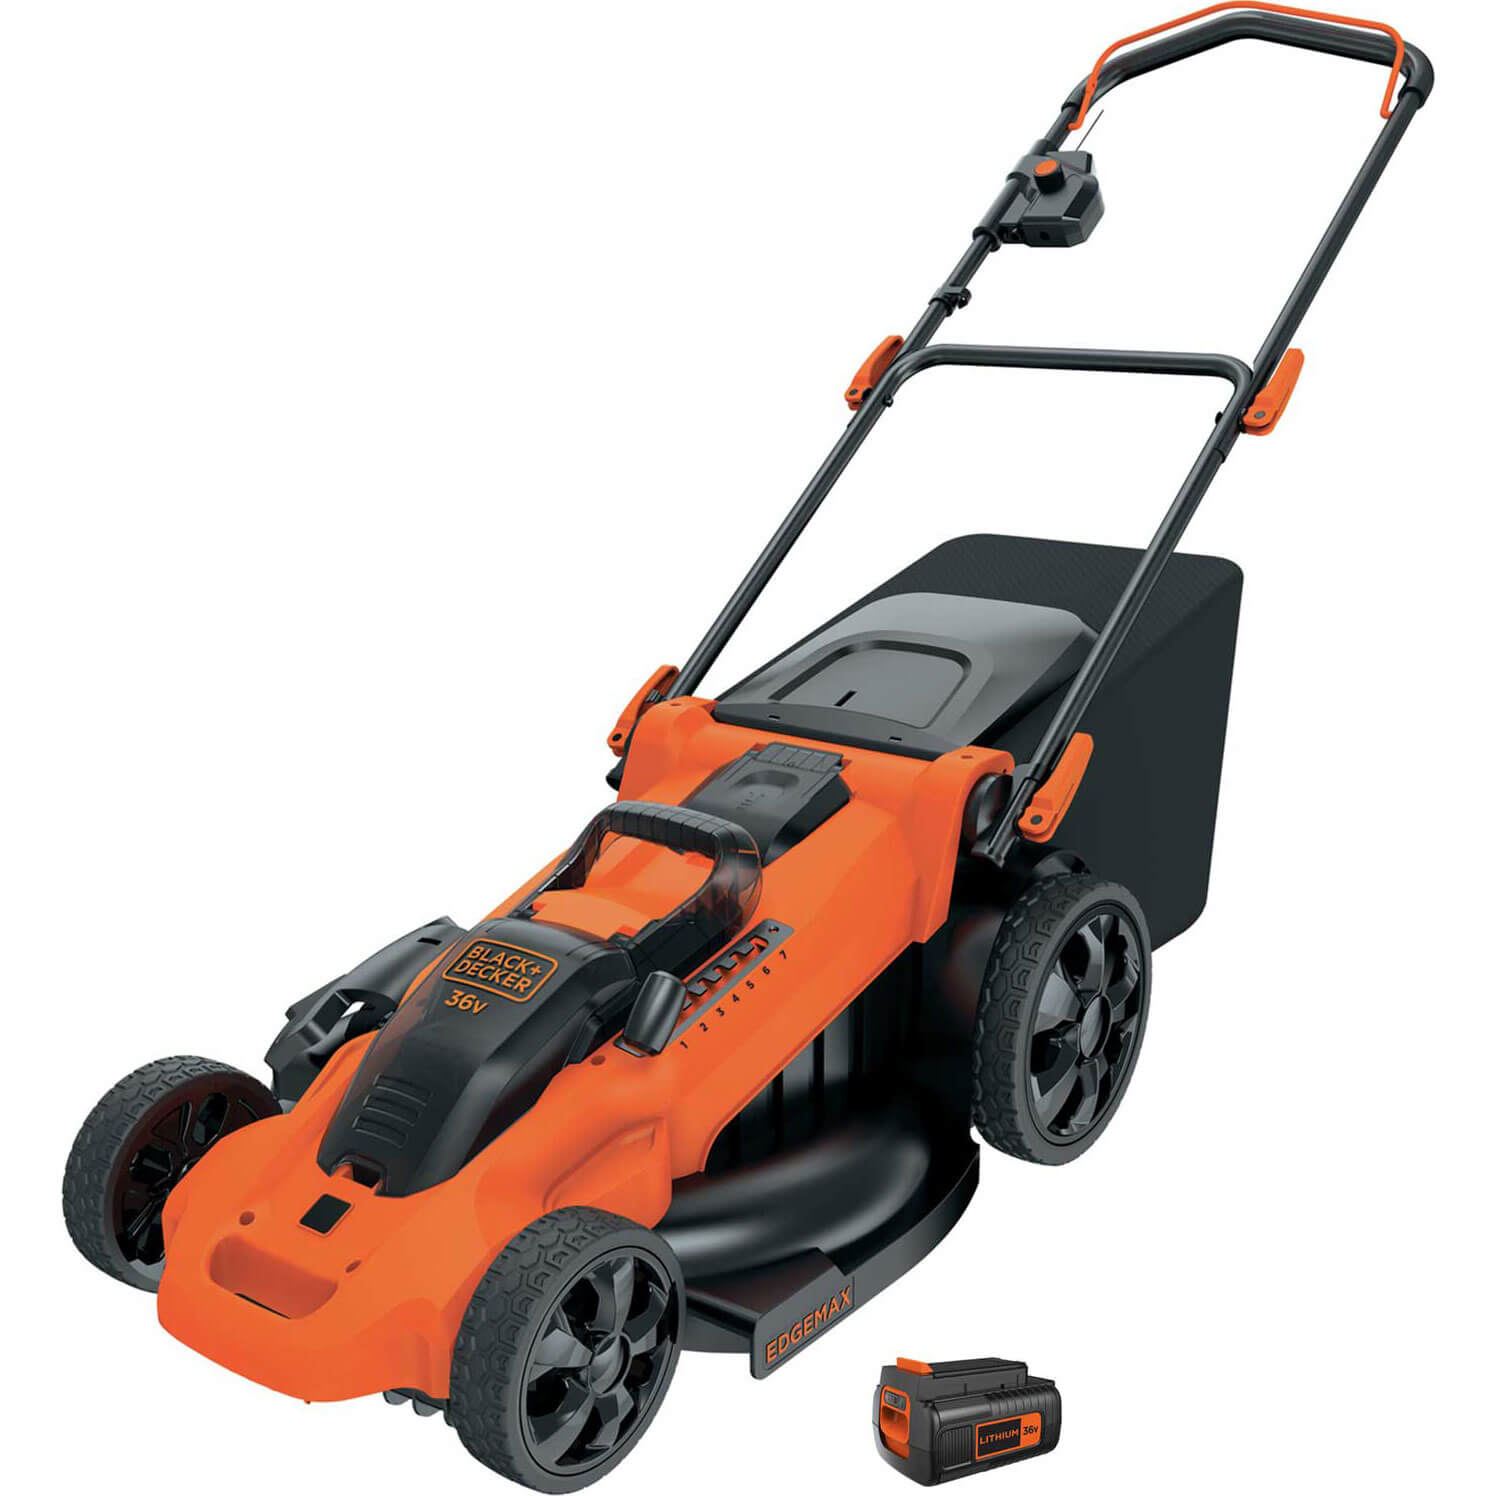 Image of Black and Decker CLMA4820L 36v Cordless Autosense Rotary Lawnmower 480mm 1 x 2ah Li-ion Charger